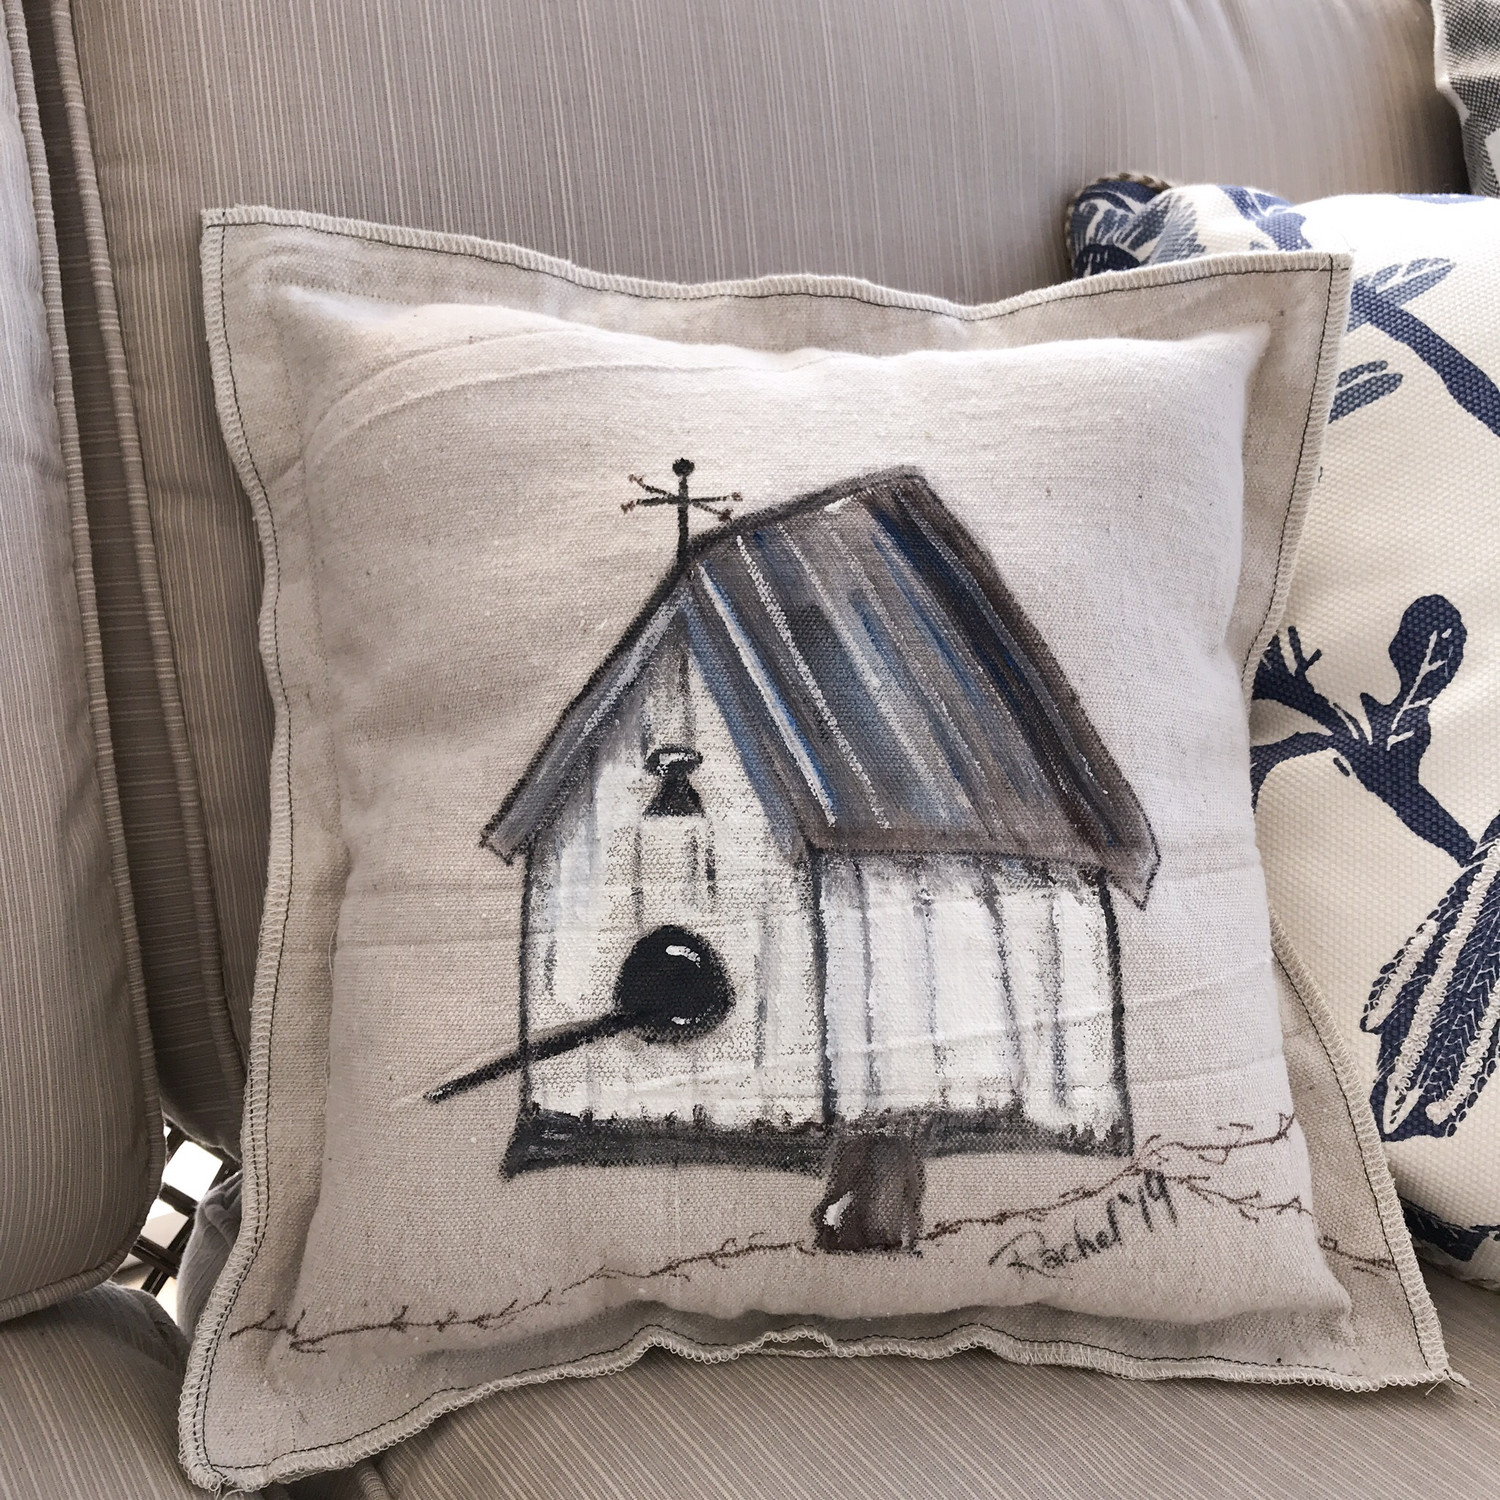 White Birdhouse Handpainted Pillow Cover